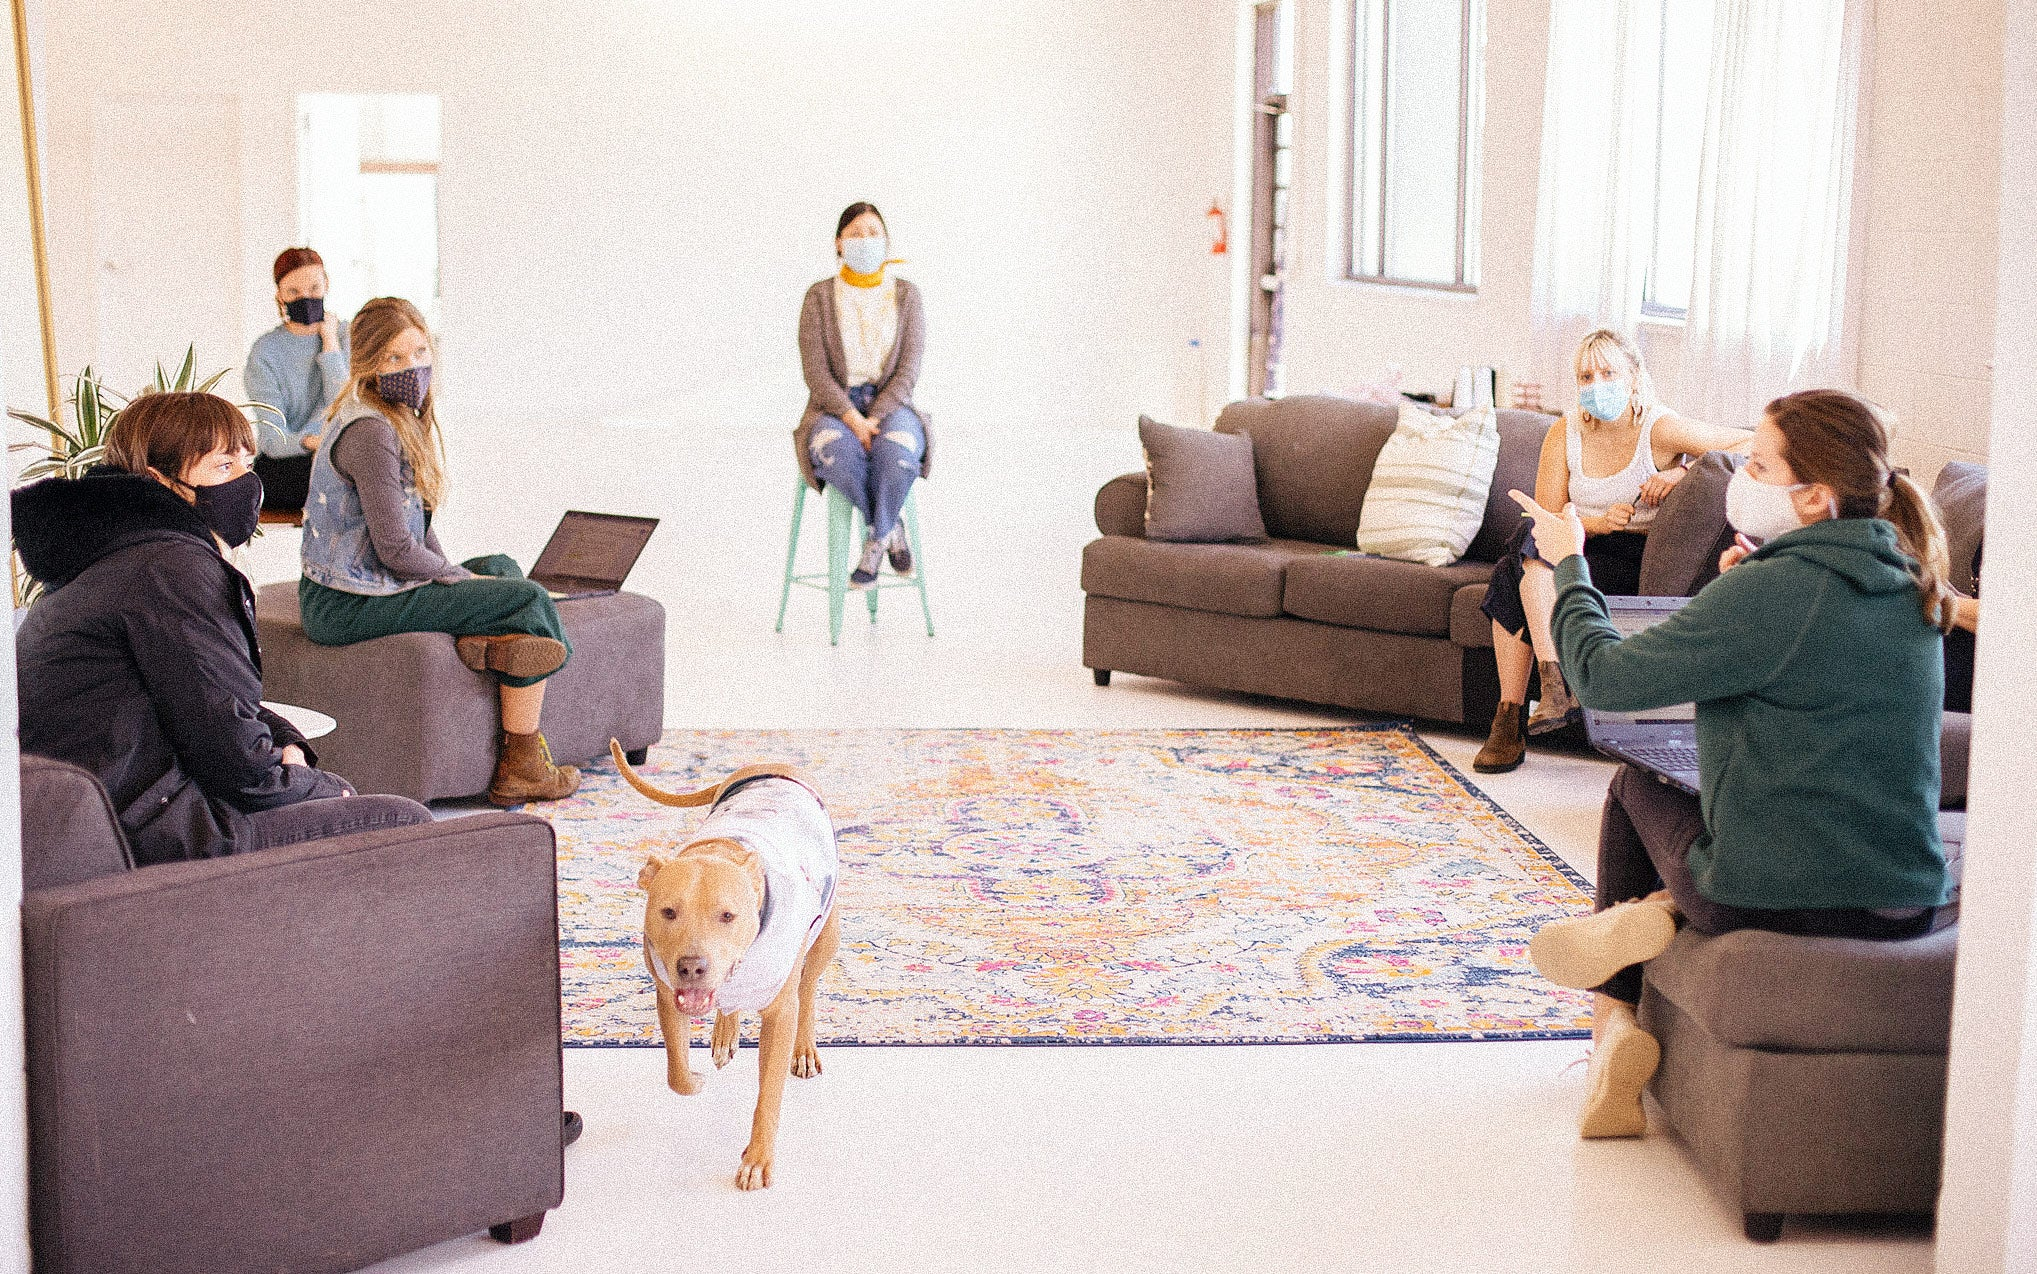 A team of six women all wearing face masks sit in a circle for a group meeting as a dog walks down the middle of the room.